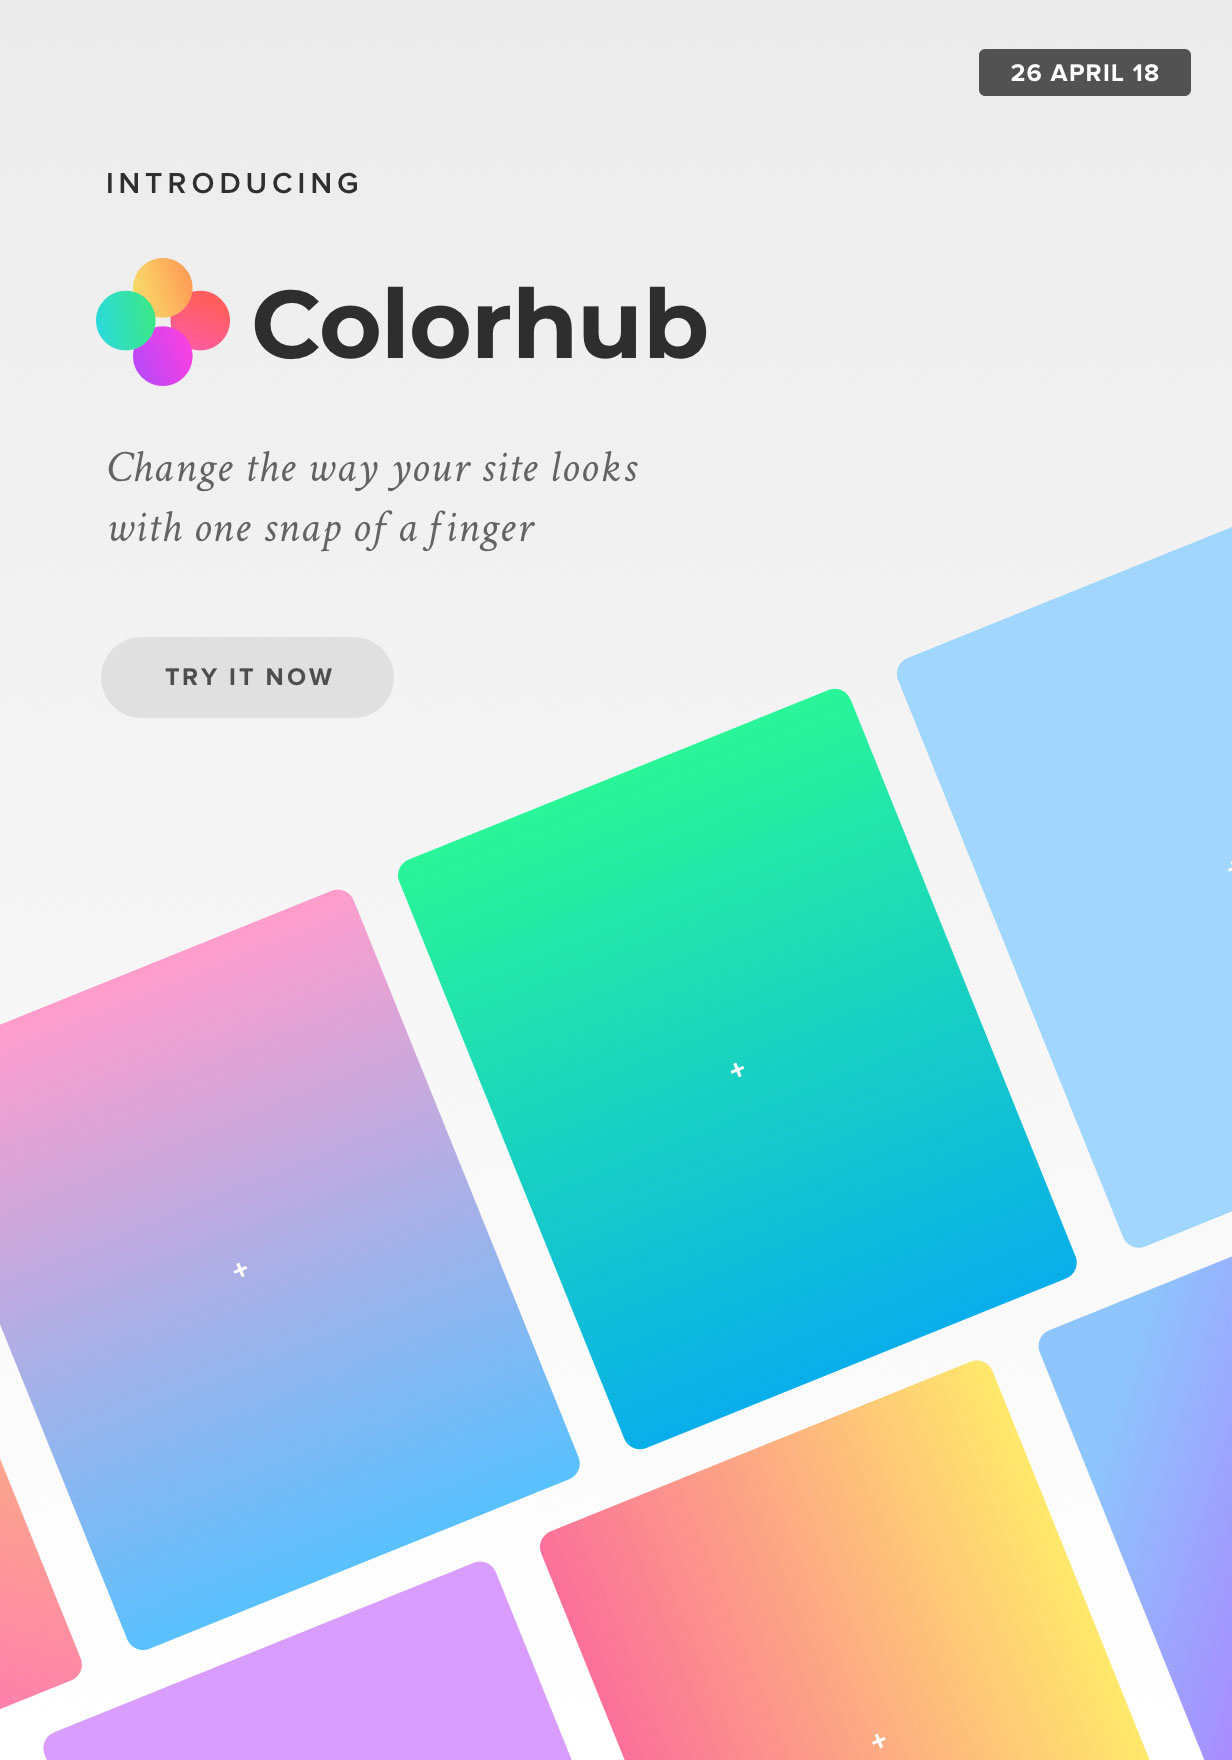 Introducing Colorhub - Change the way your website looks with just a snap